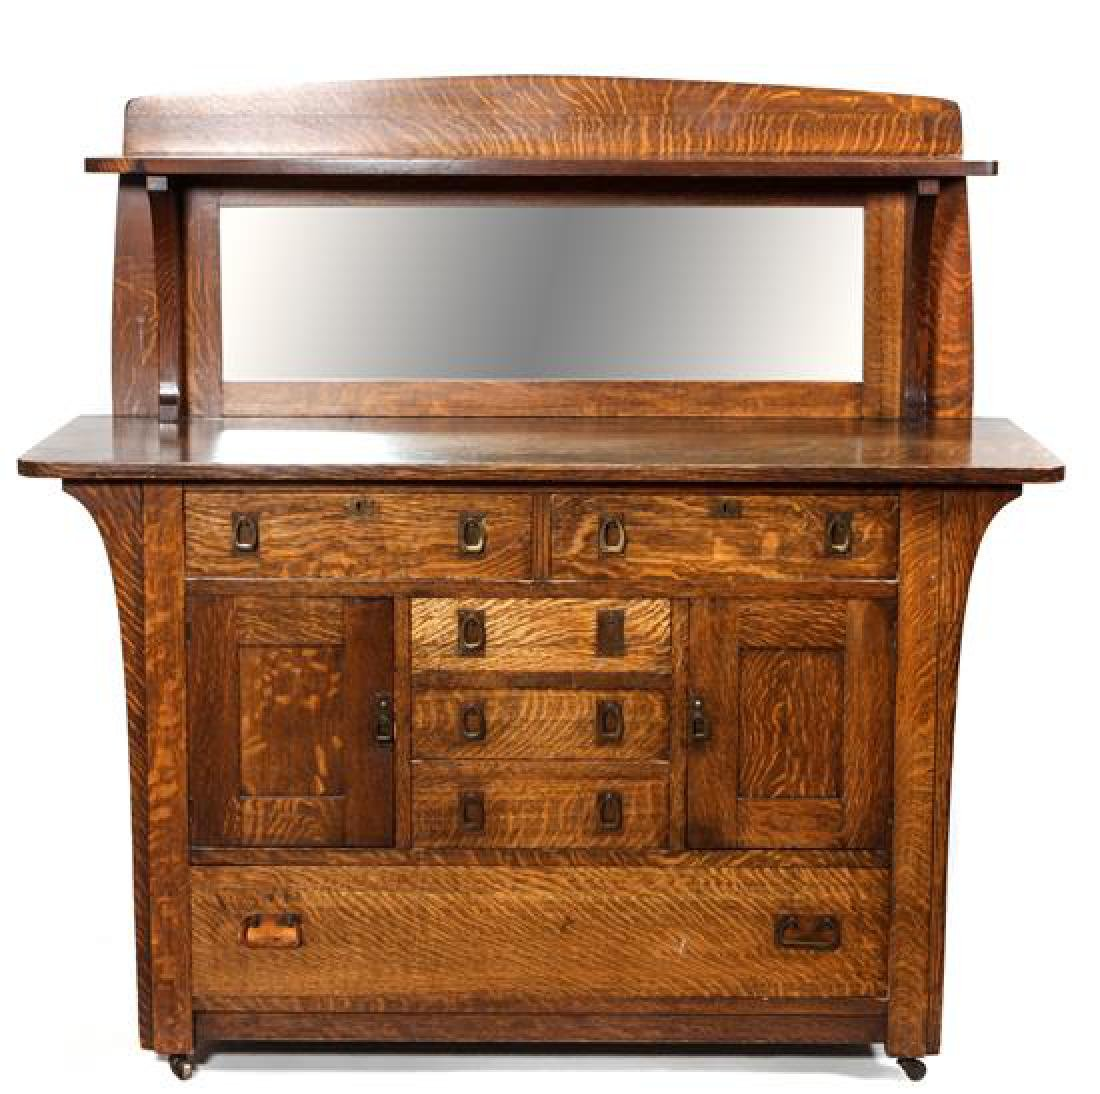 American Arts & Crafts Oak Mirror Backed Sideboard by